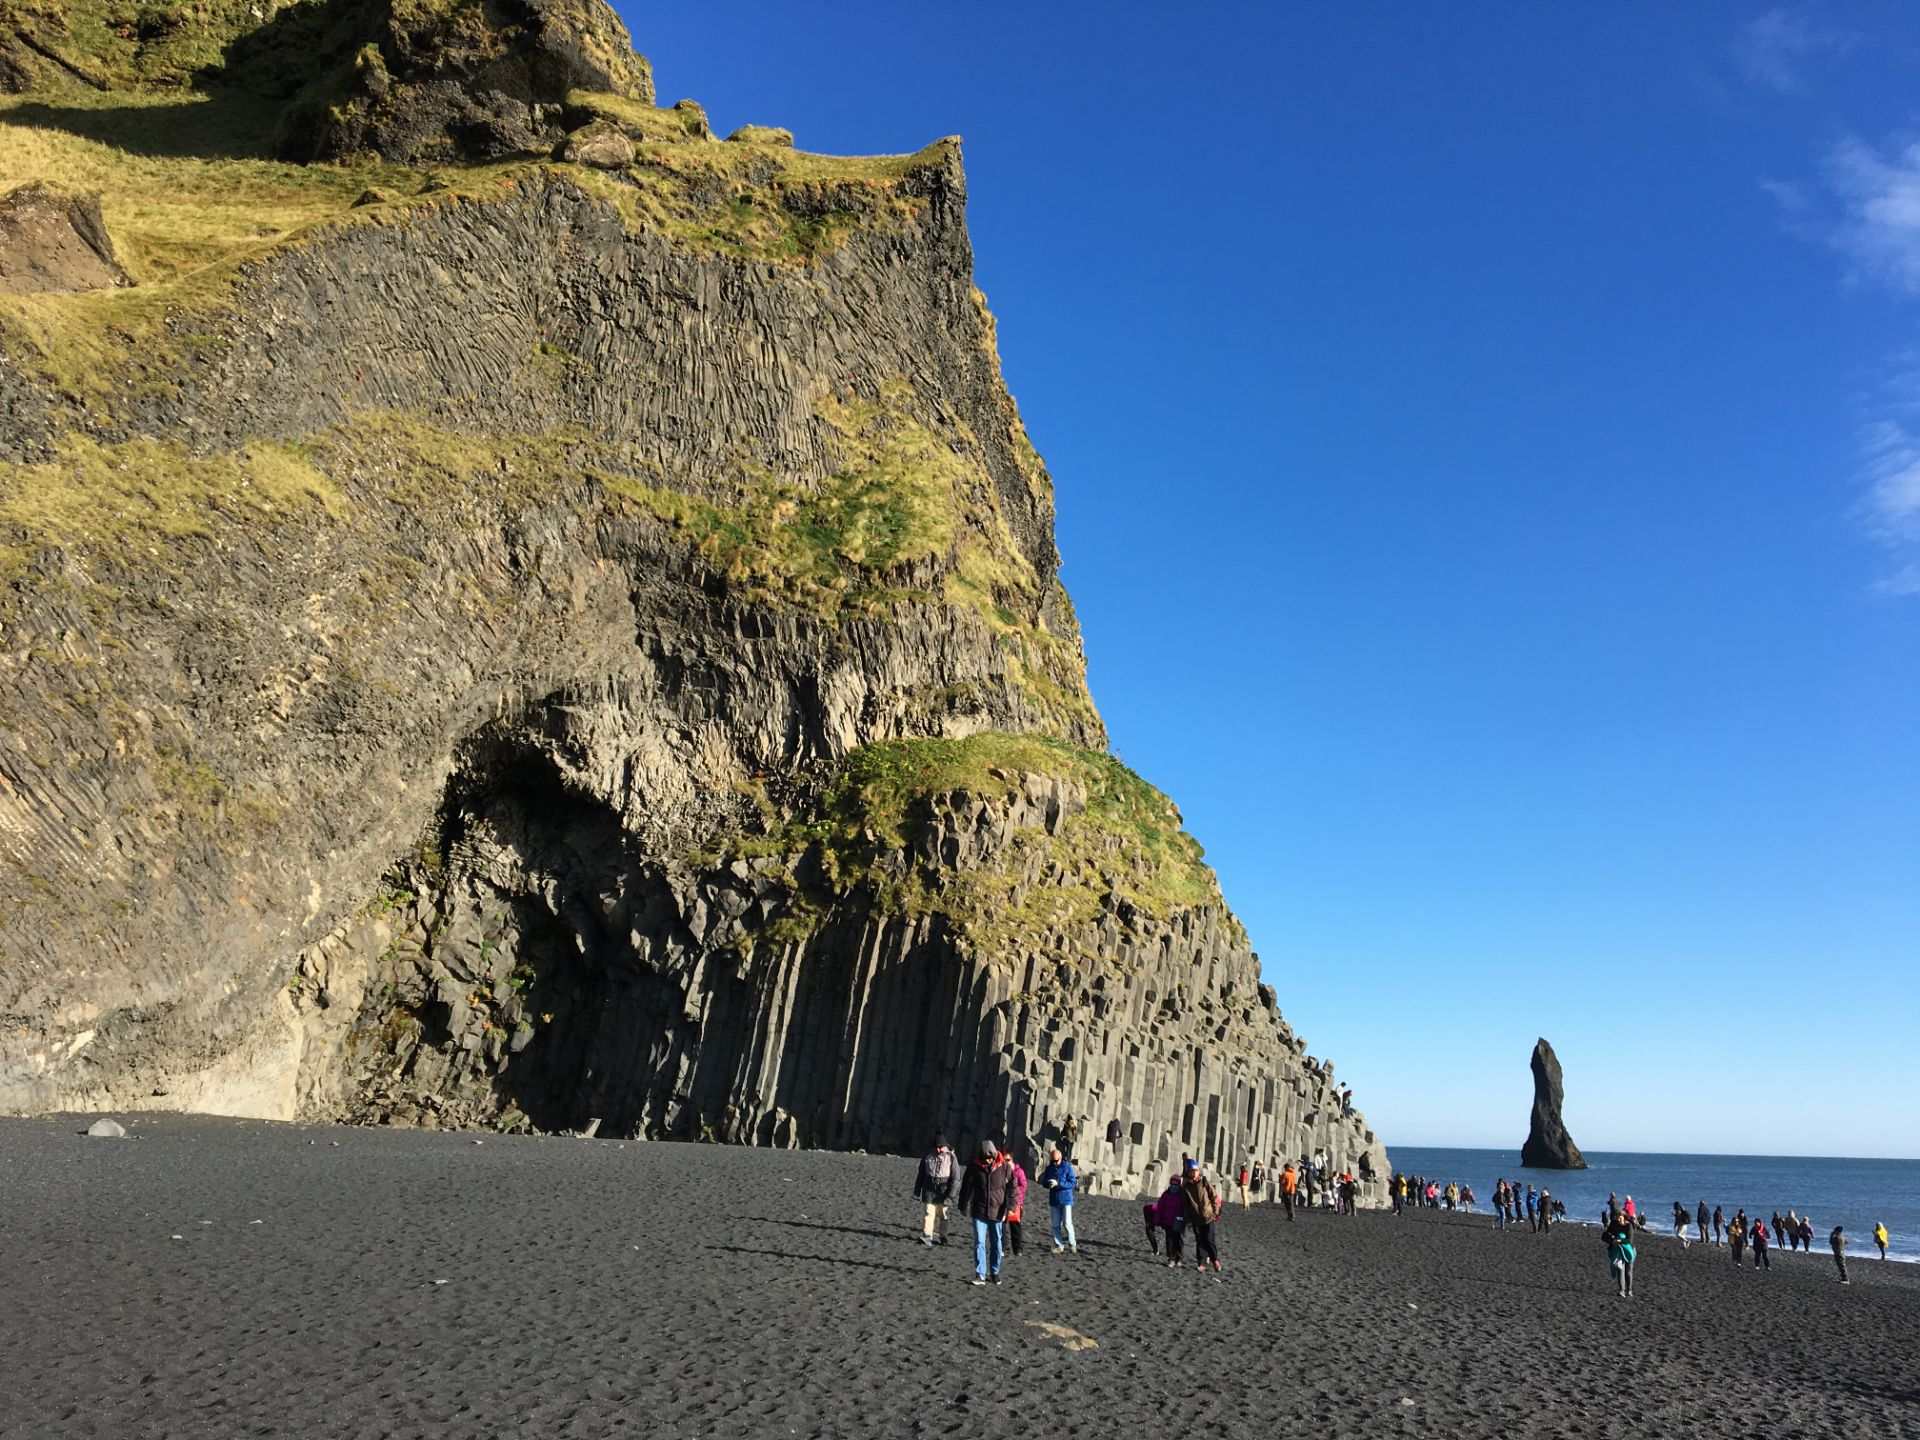 6703914e Images of the Black Beach showing the black sand/pebbles, the jagged cliff  face and the stacks/stumps on coast edge.